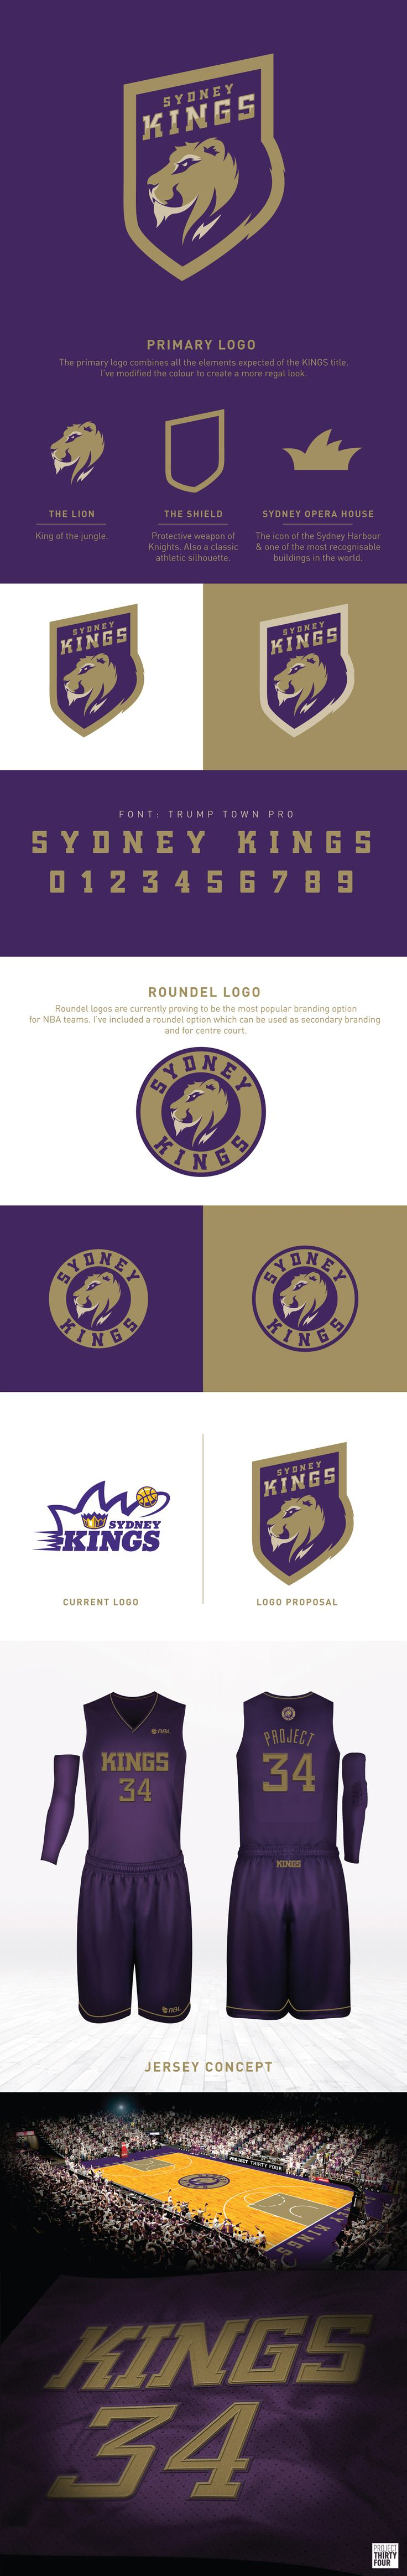 A rebranding exercise for the Sydney Kings of the National Basketball League in Australia.